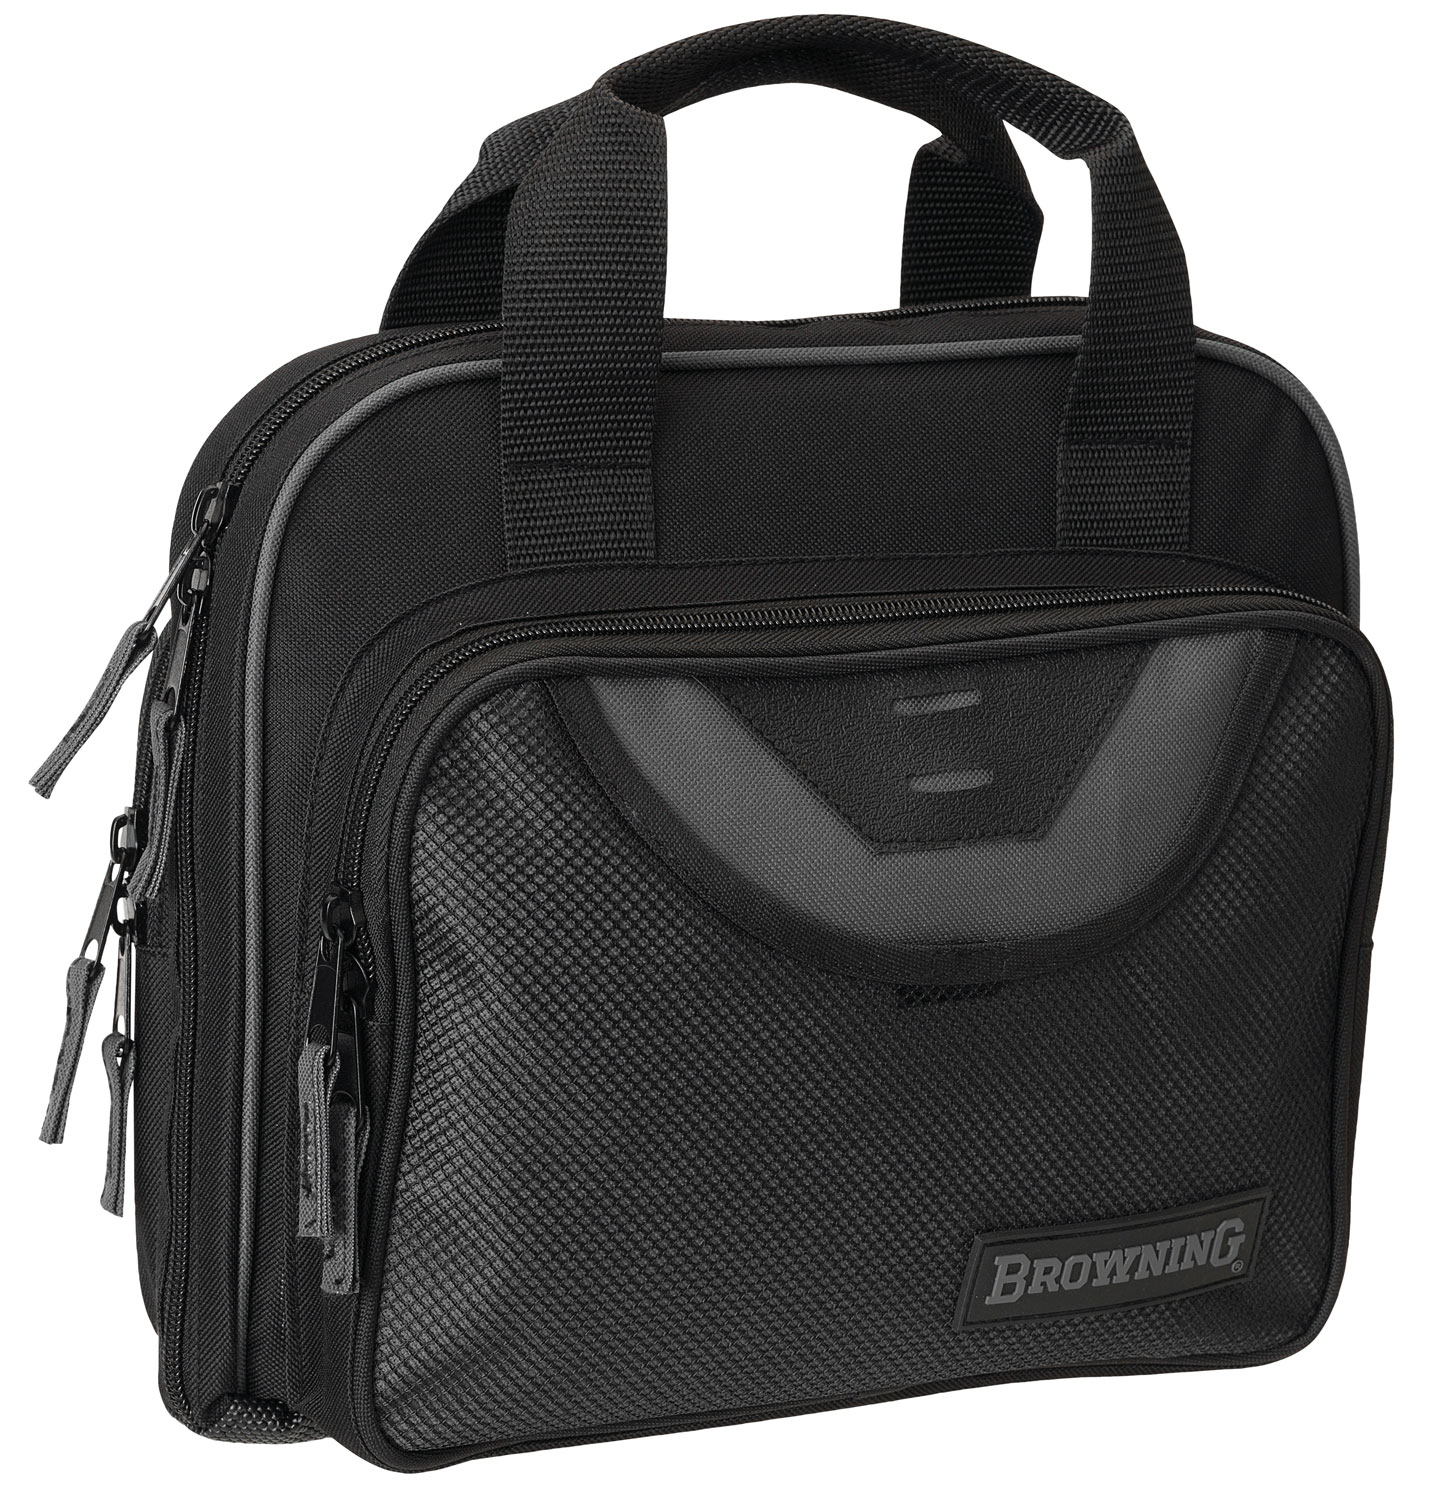 Browning 12902099 Crossfire  Double Pistol Case 12.5